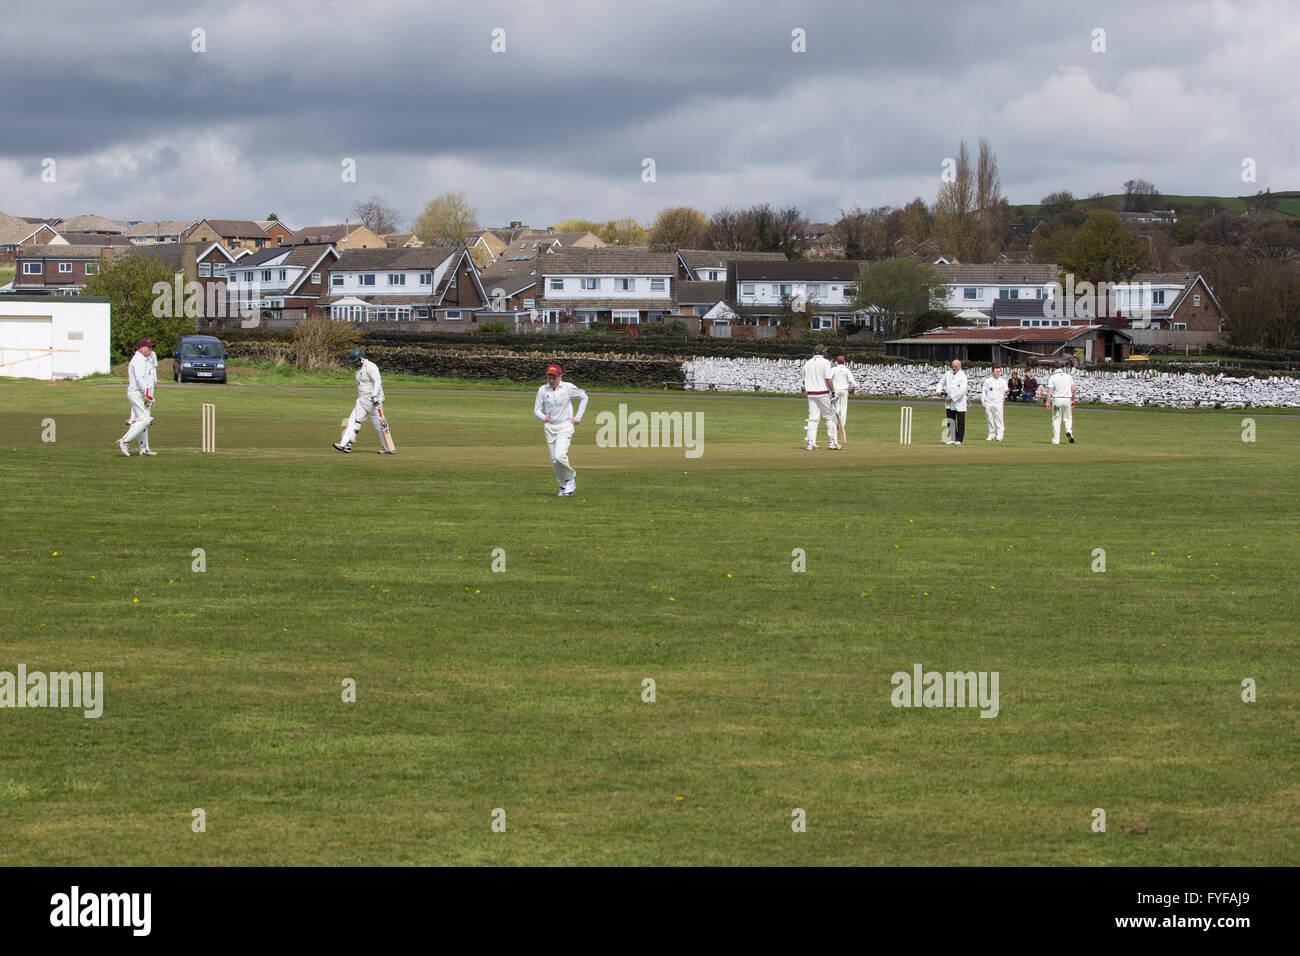 English game of cricket being played on a local village ground Stock Photo